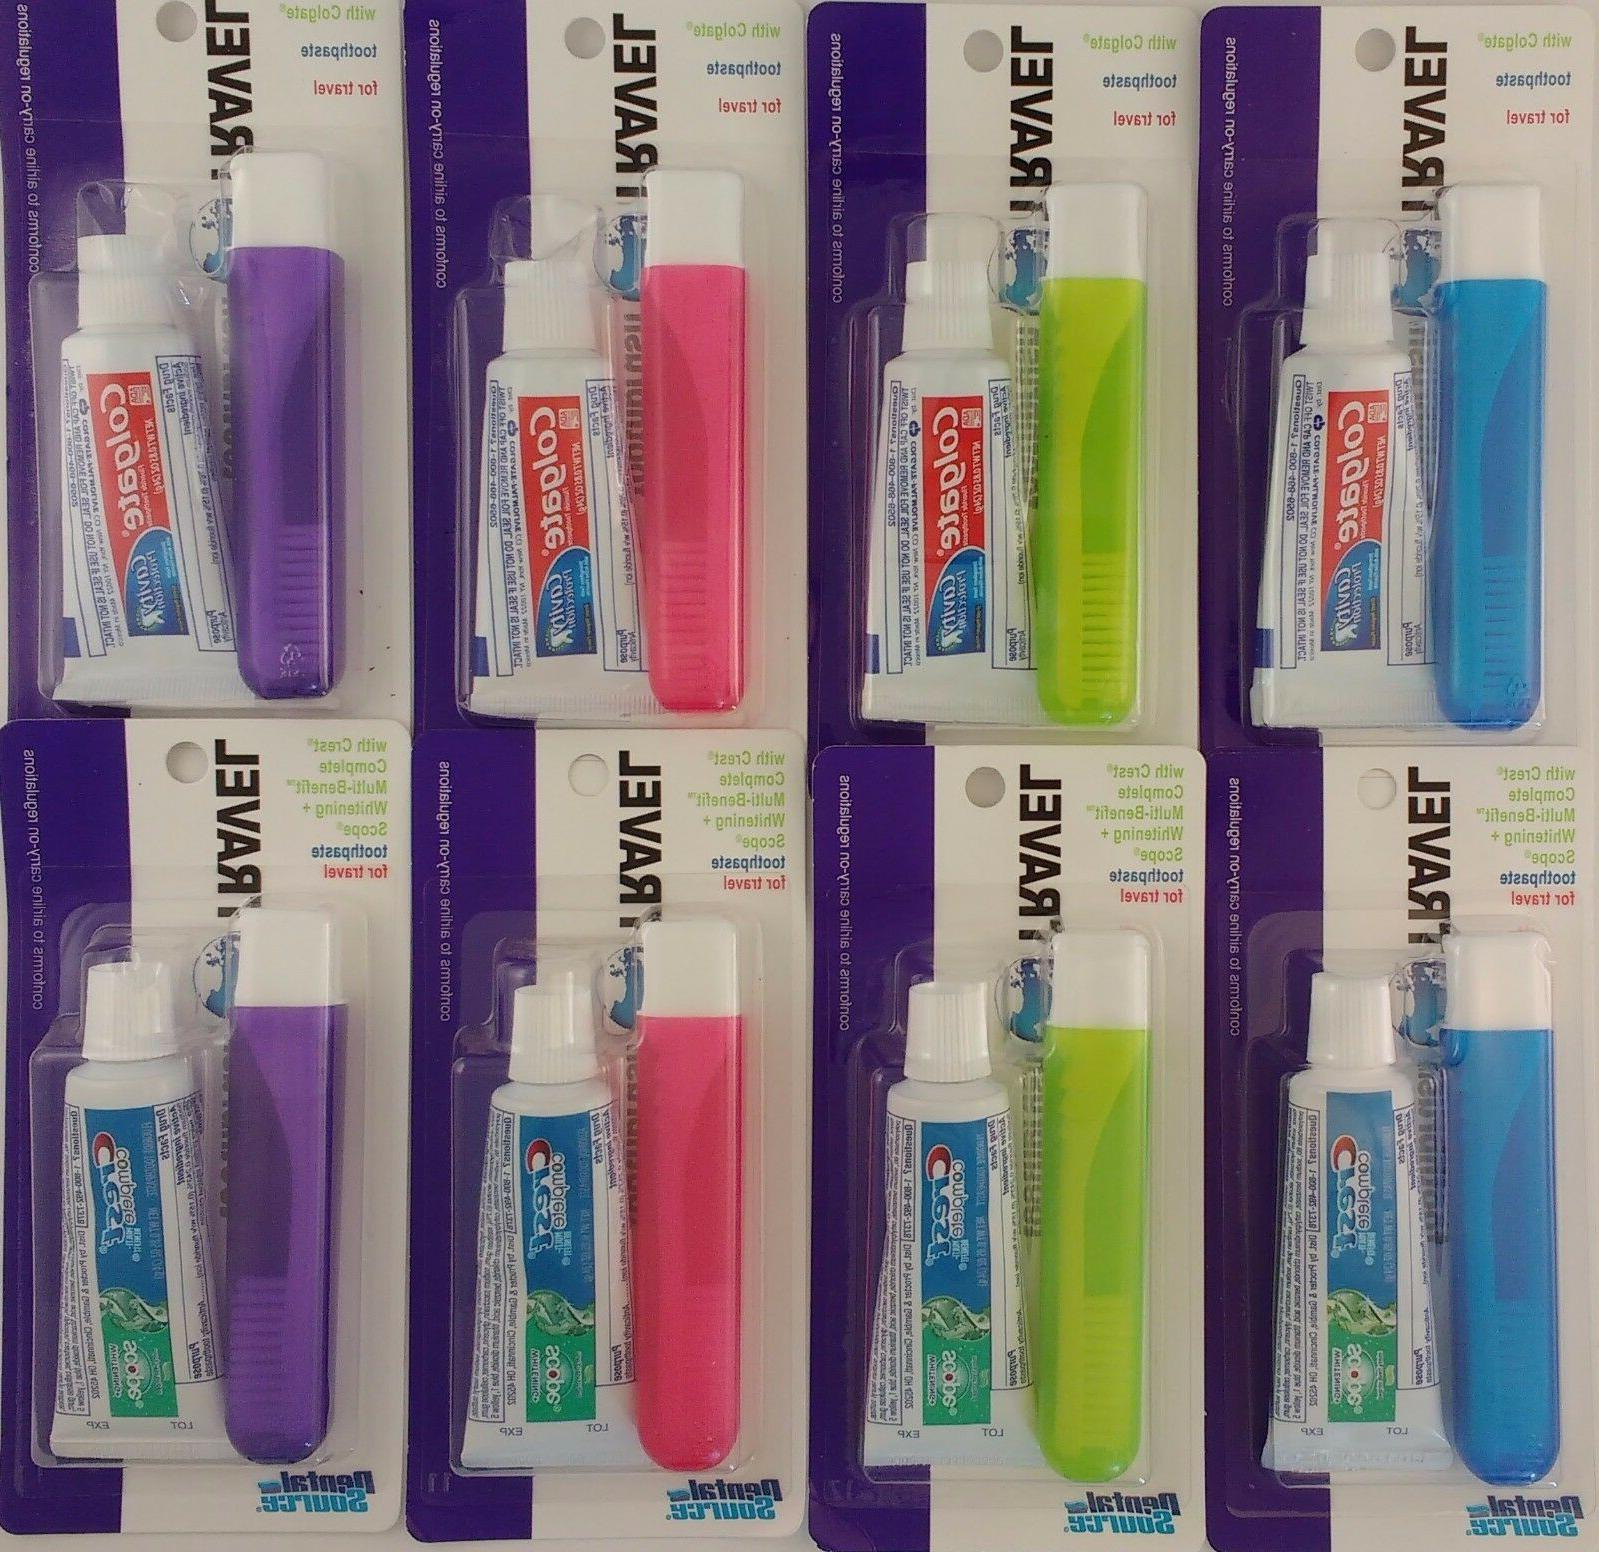 travel toothbrush and toothpaste kit select colgate